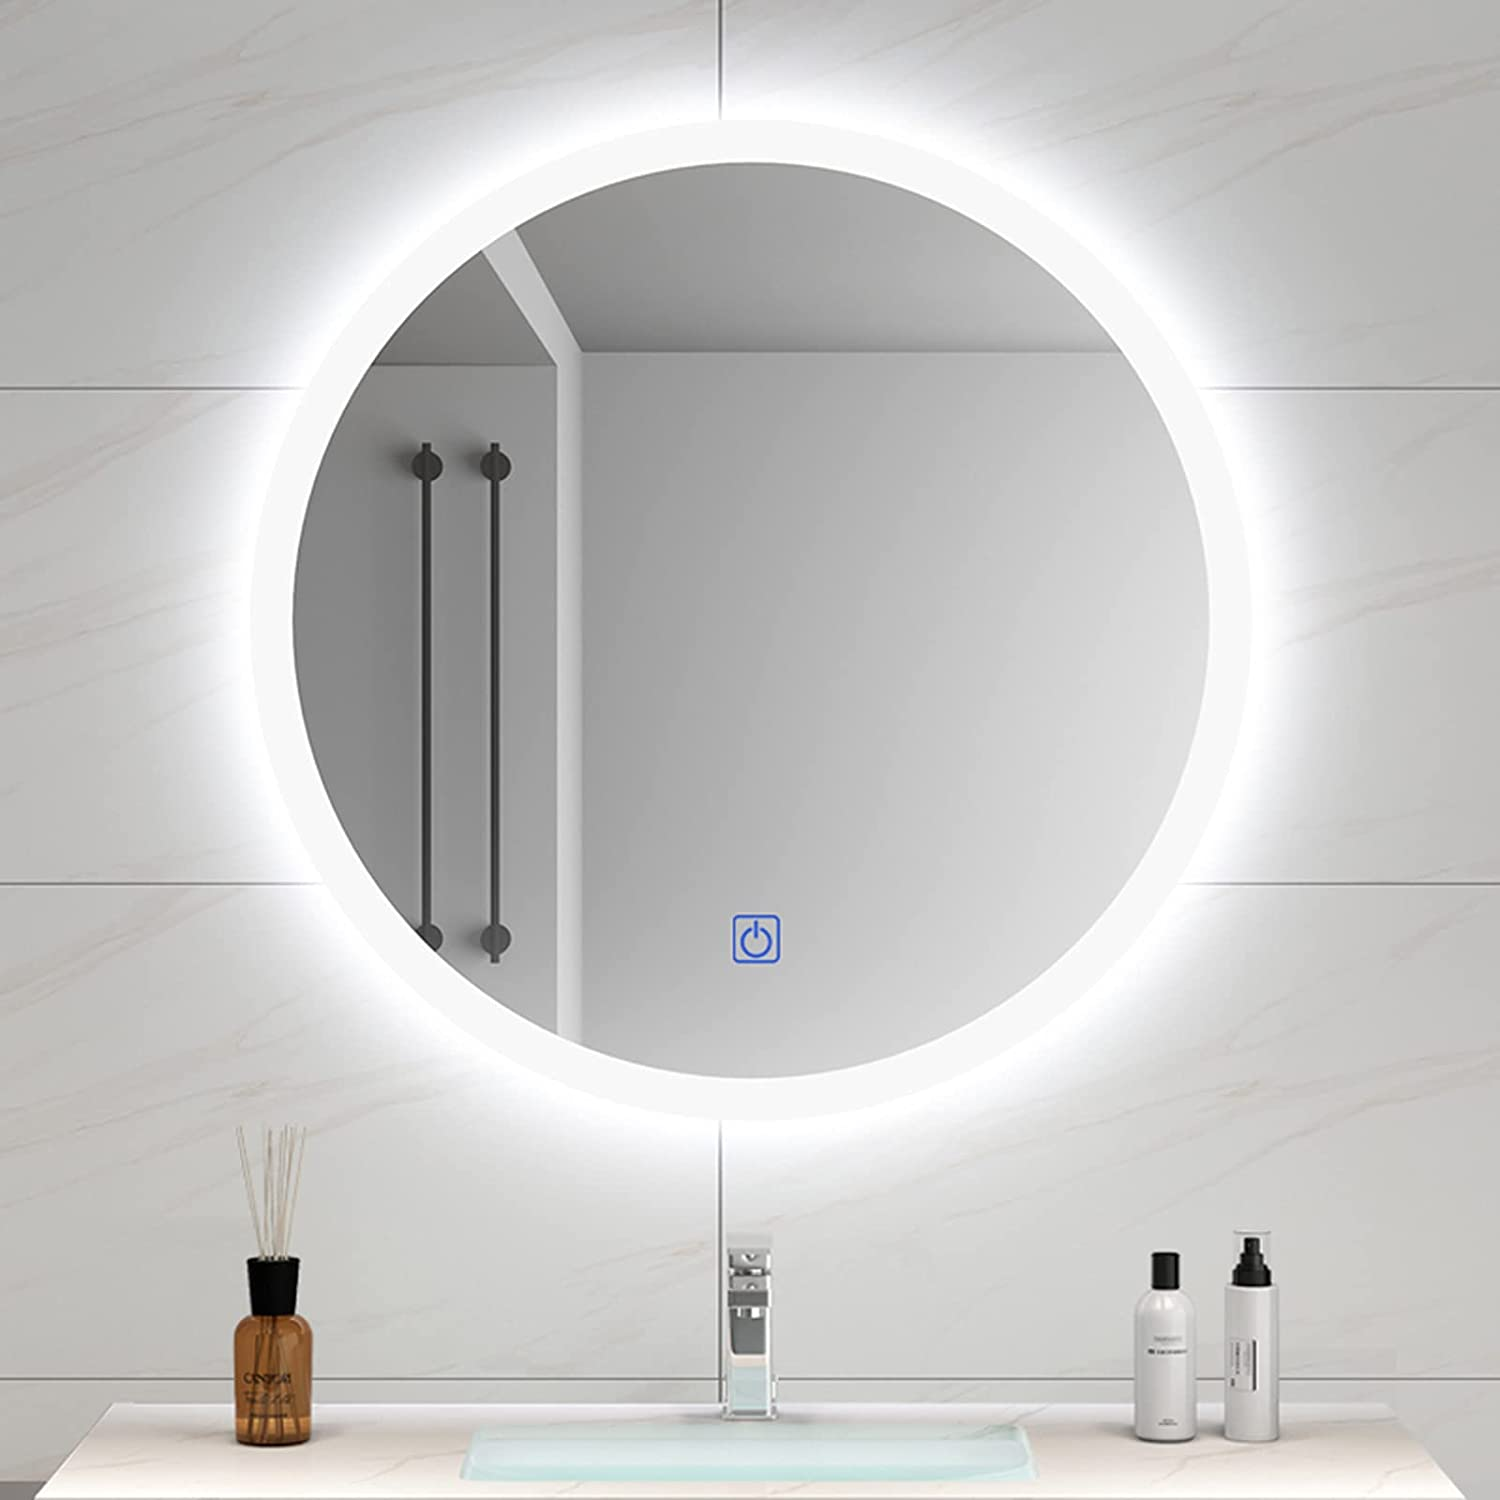 YZJJ LED Lighted Bathroom Mirror Backlit Max 61% OFF Ro Mounted Wall Our shop OFFers the best service